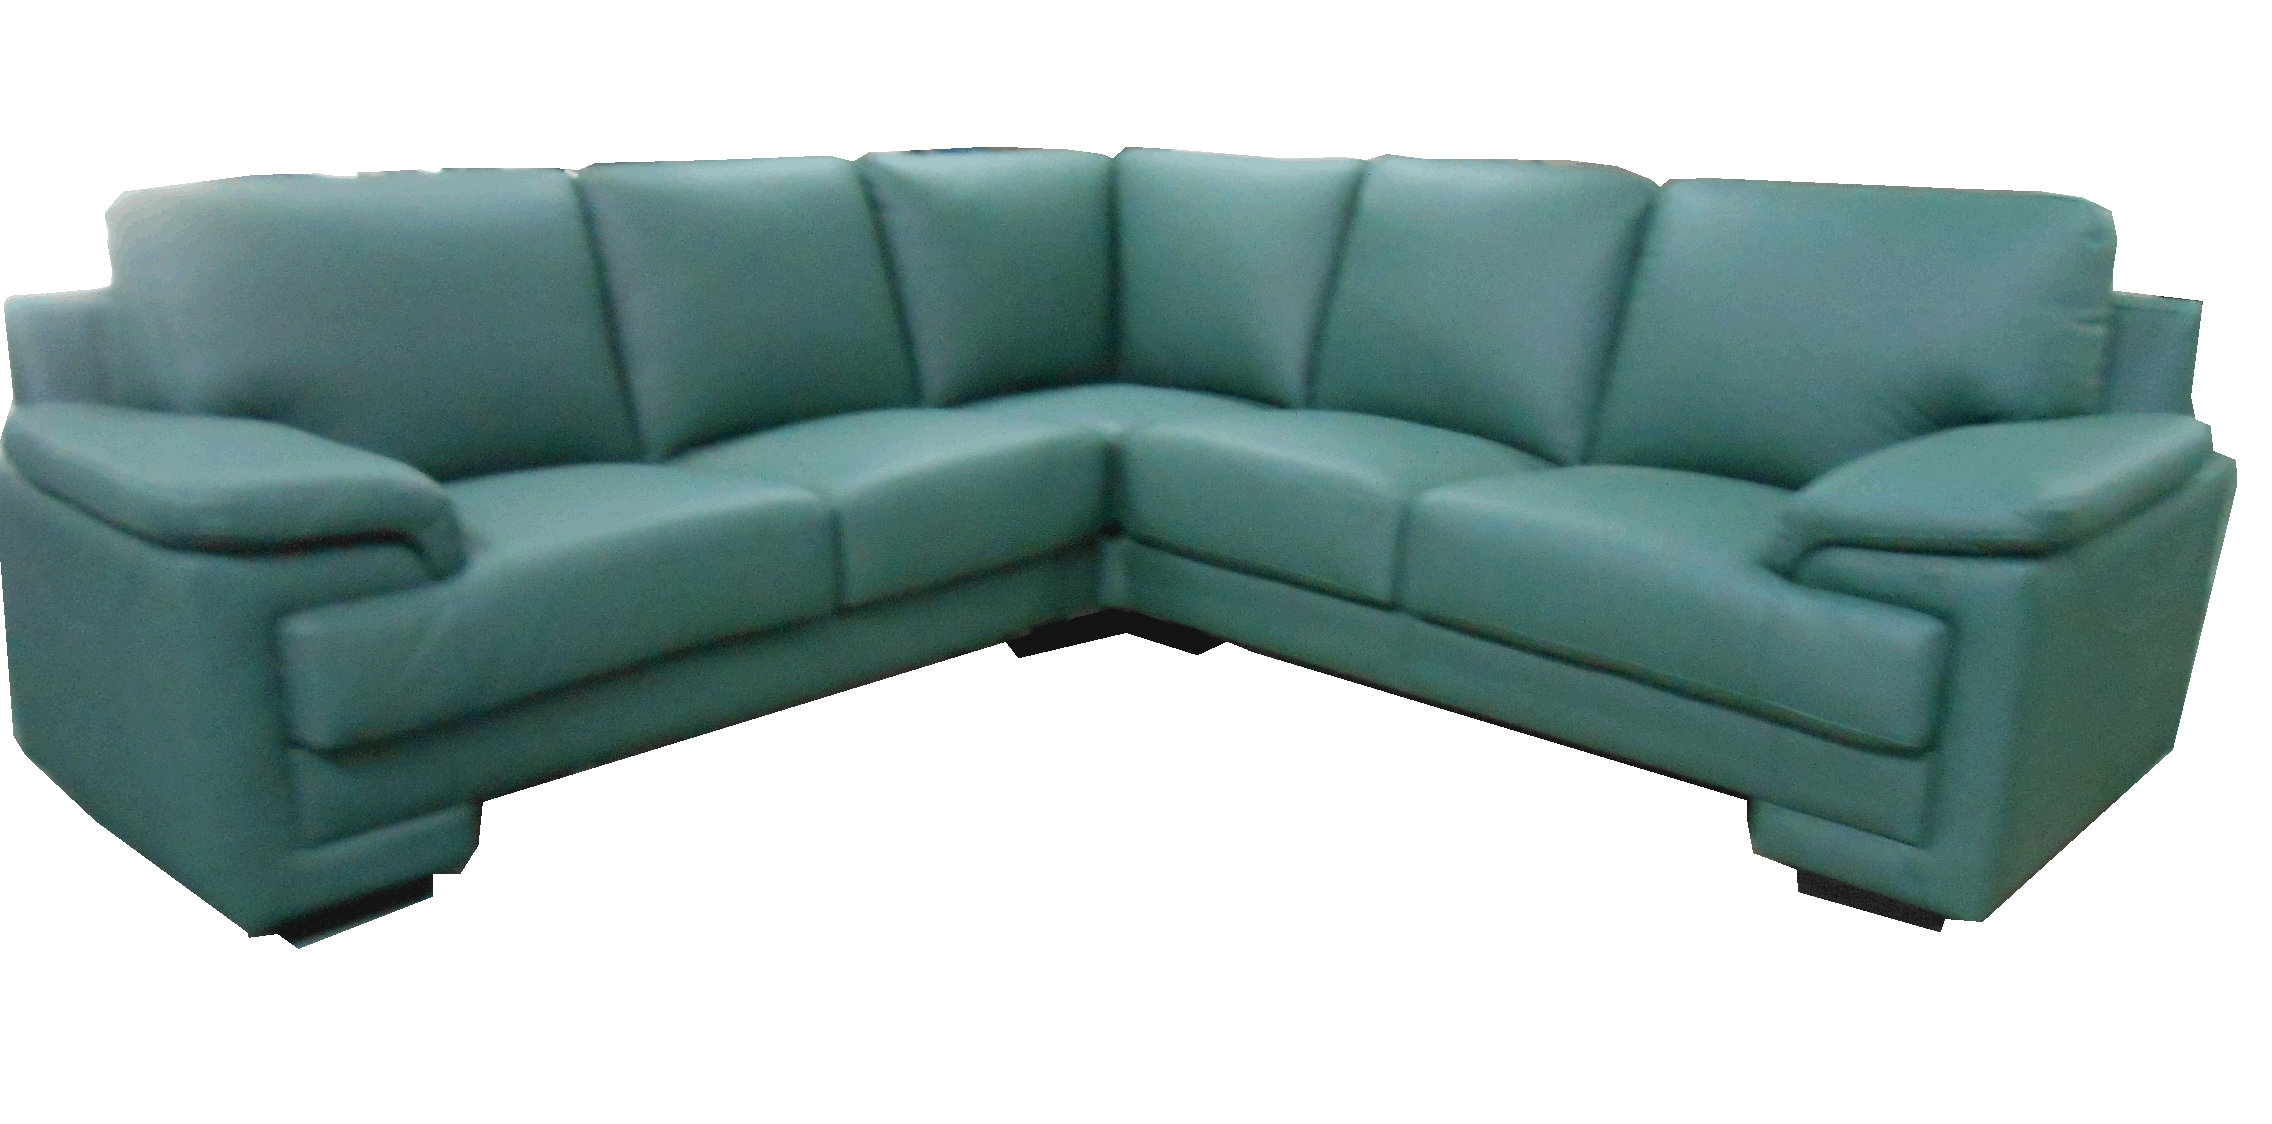 SD 37 Sectional Sofa